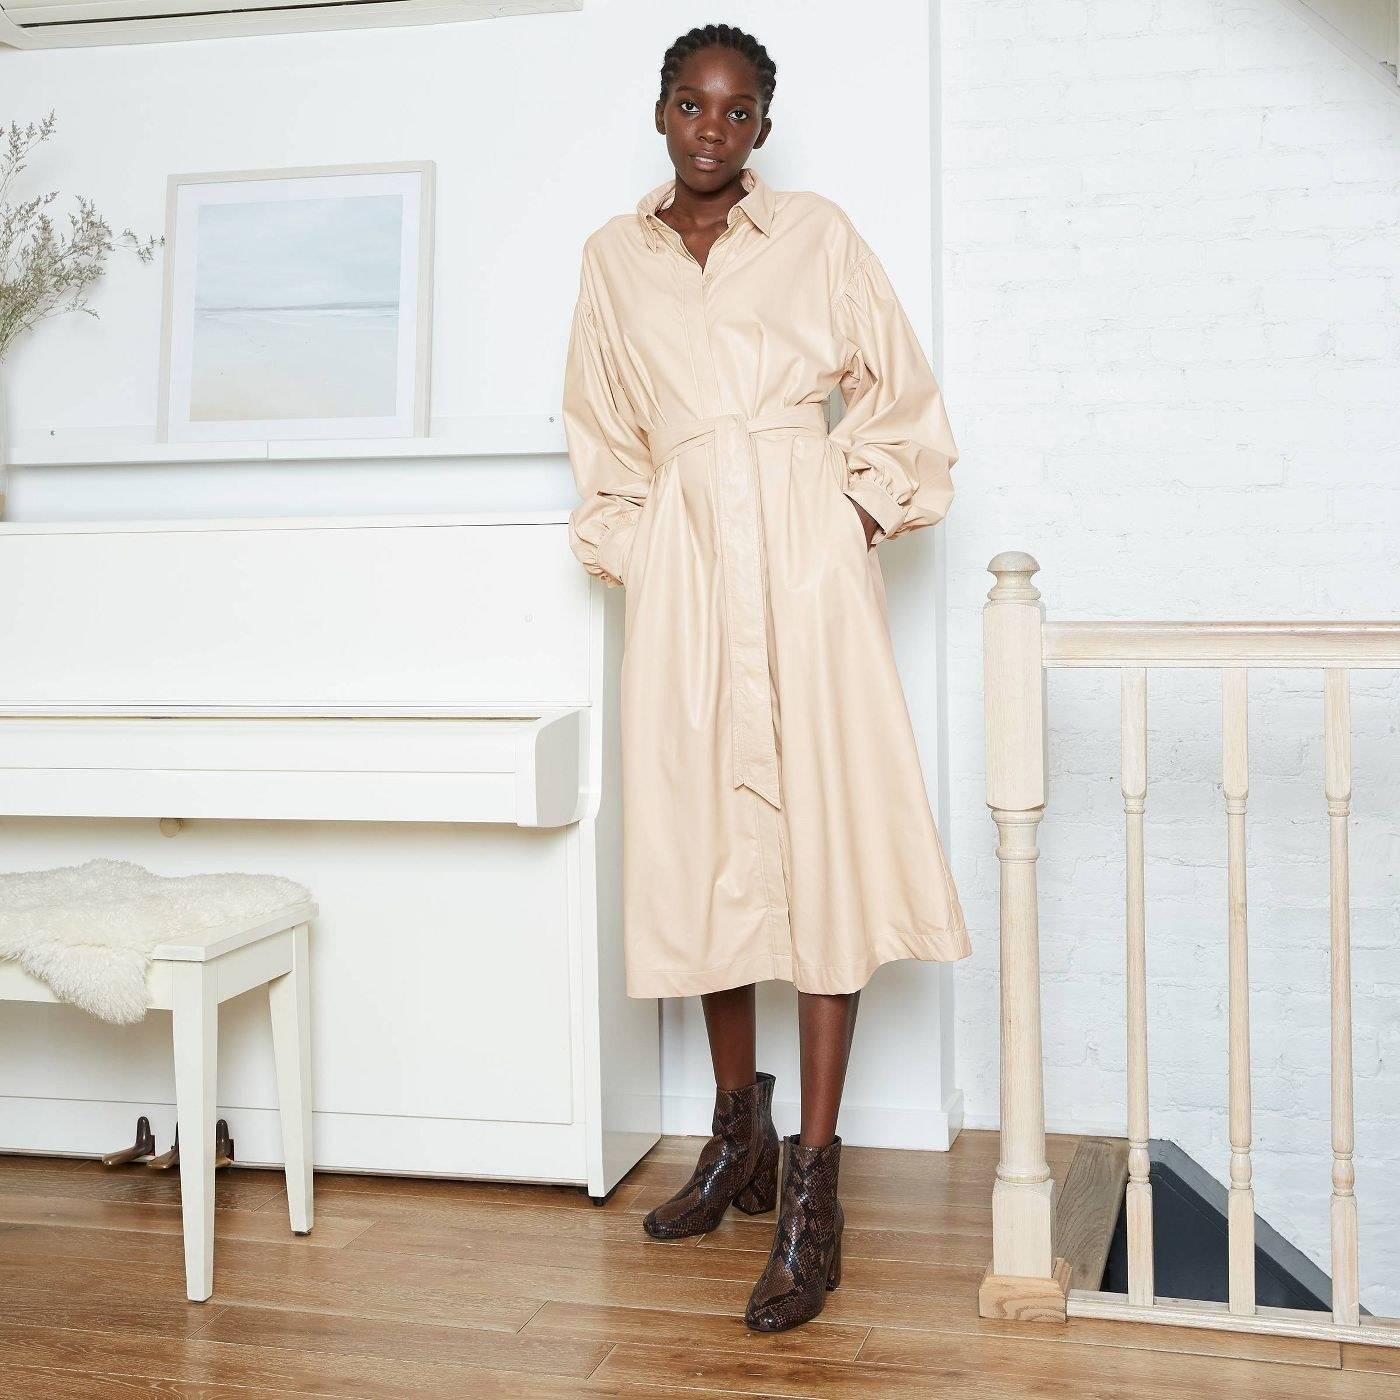 Model wearing the cream midi dress with brown snake-print boots